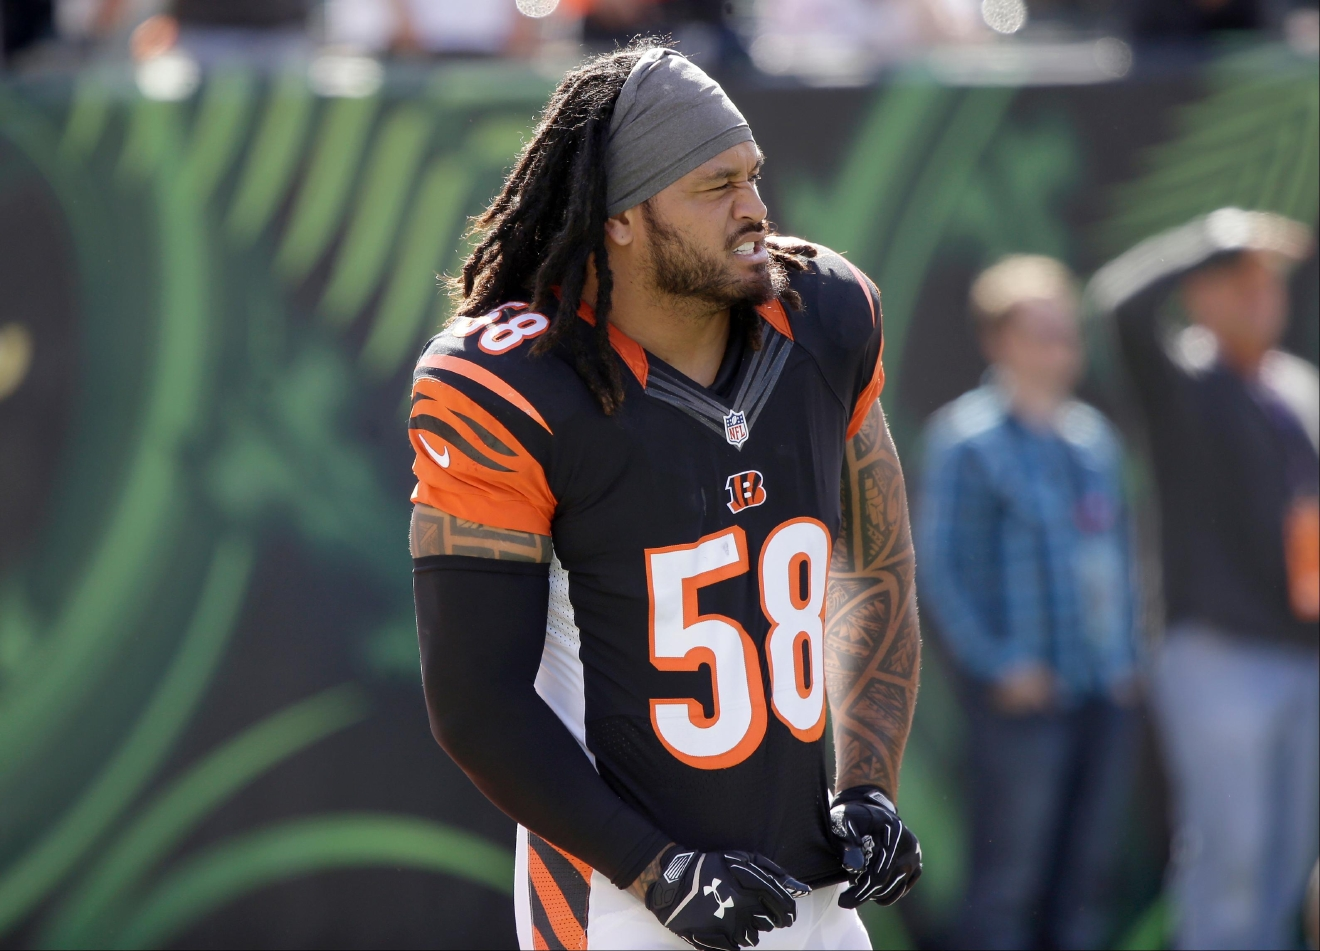 Bengals LB Rey Maualuga finished the 2016-17 season with 17 solo tackles and an interception. (WKRC/Tony Tribble)